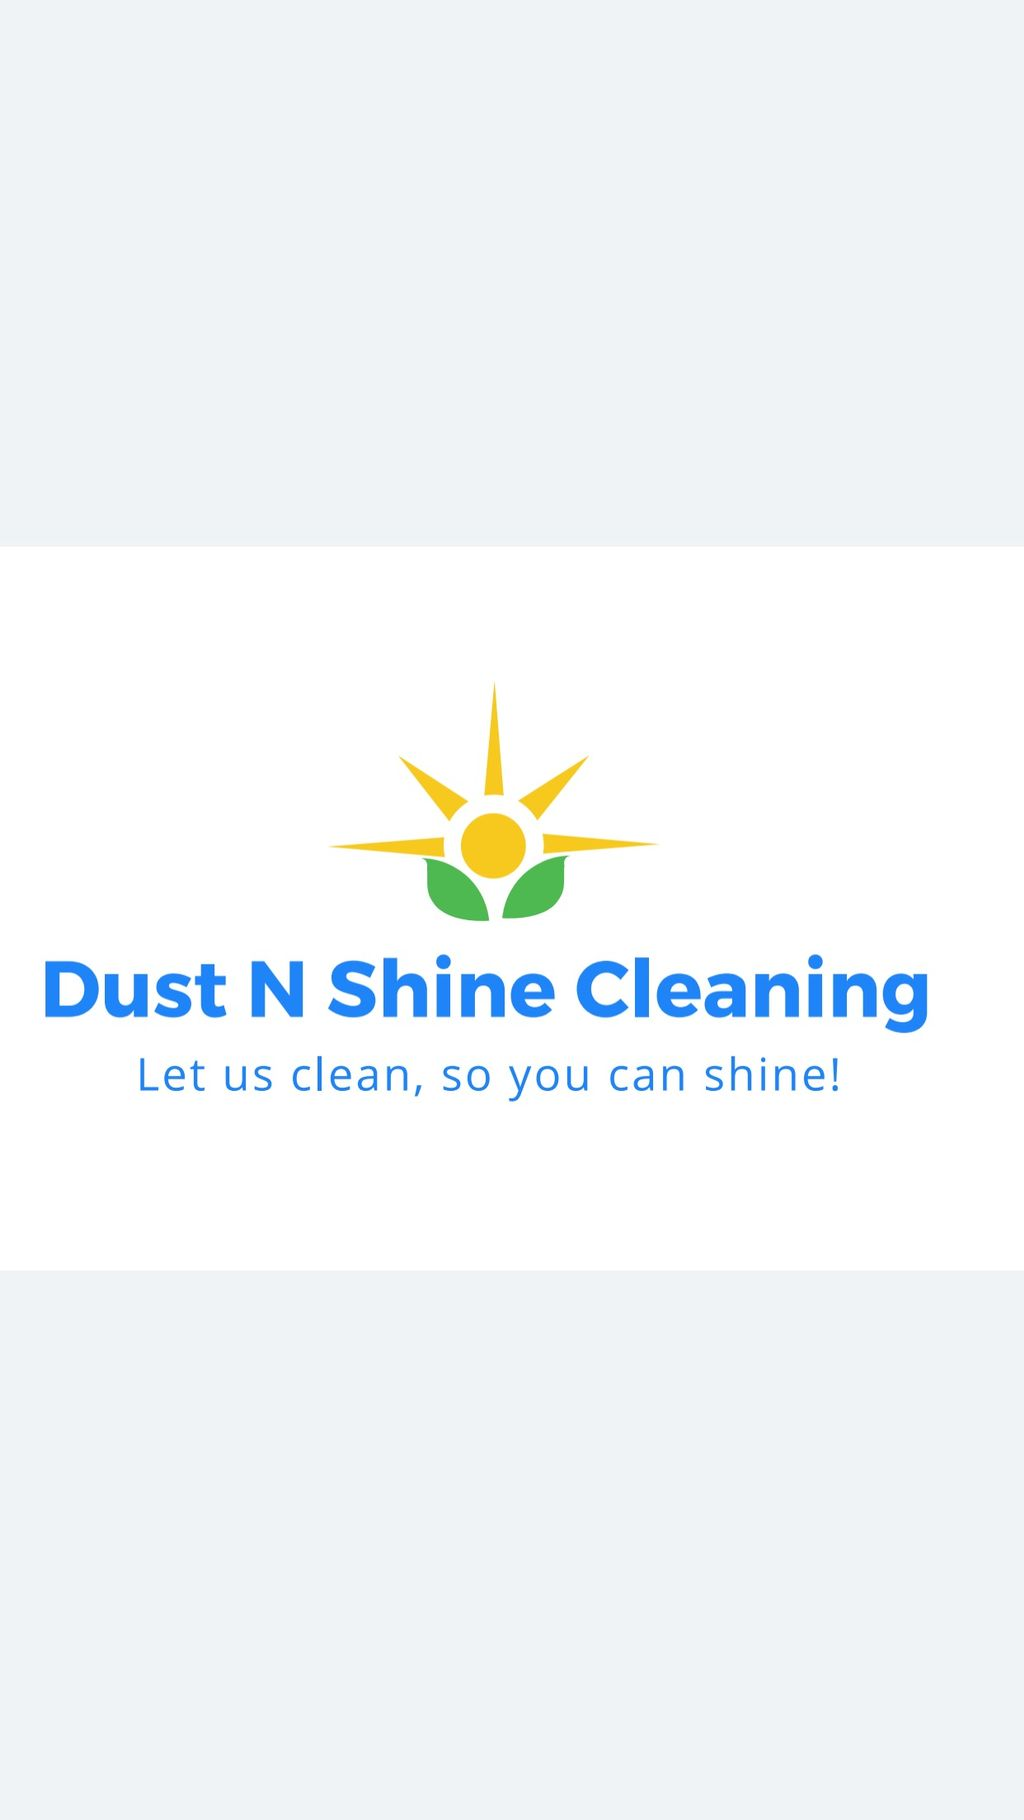 Dust N Shine Cleaning